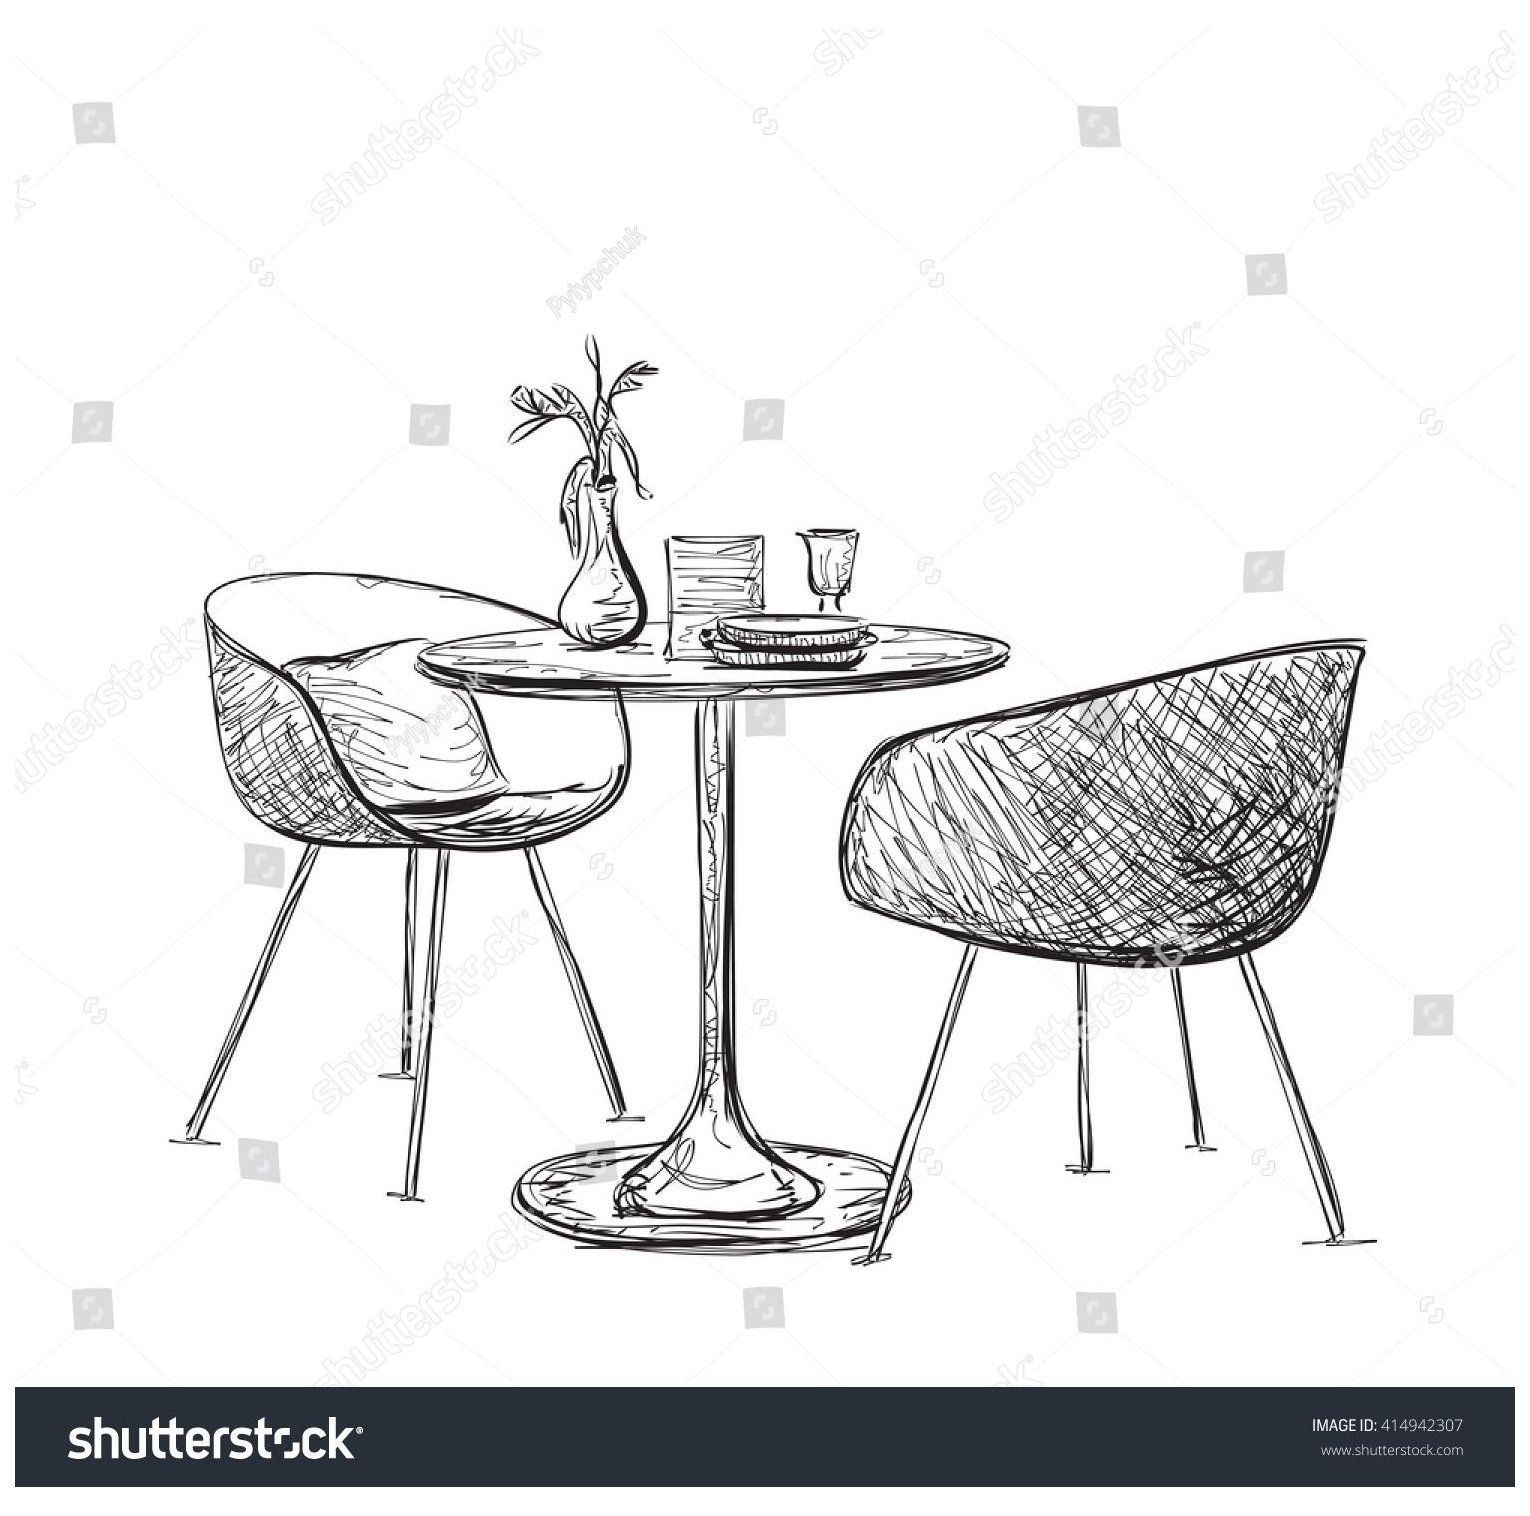 Sketch Modern Interior Table Chairs Hand Stock Vector Royalty Free 414942307 Sketch Of M In 2020 Interior Design Sketches Furniture Design Sketches How To Draw Hands